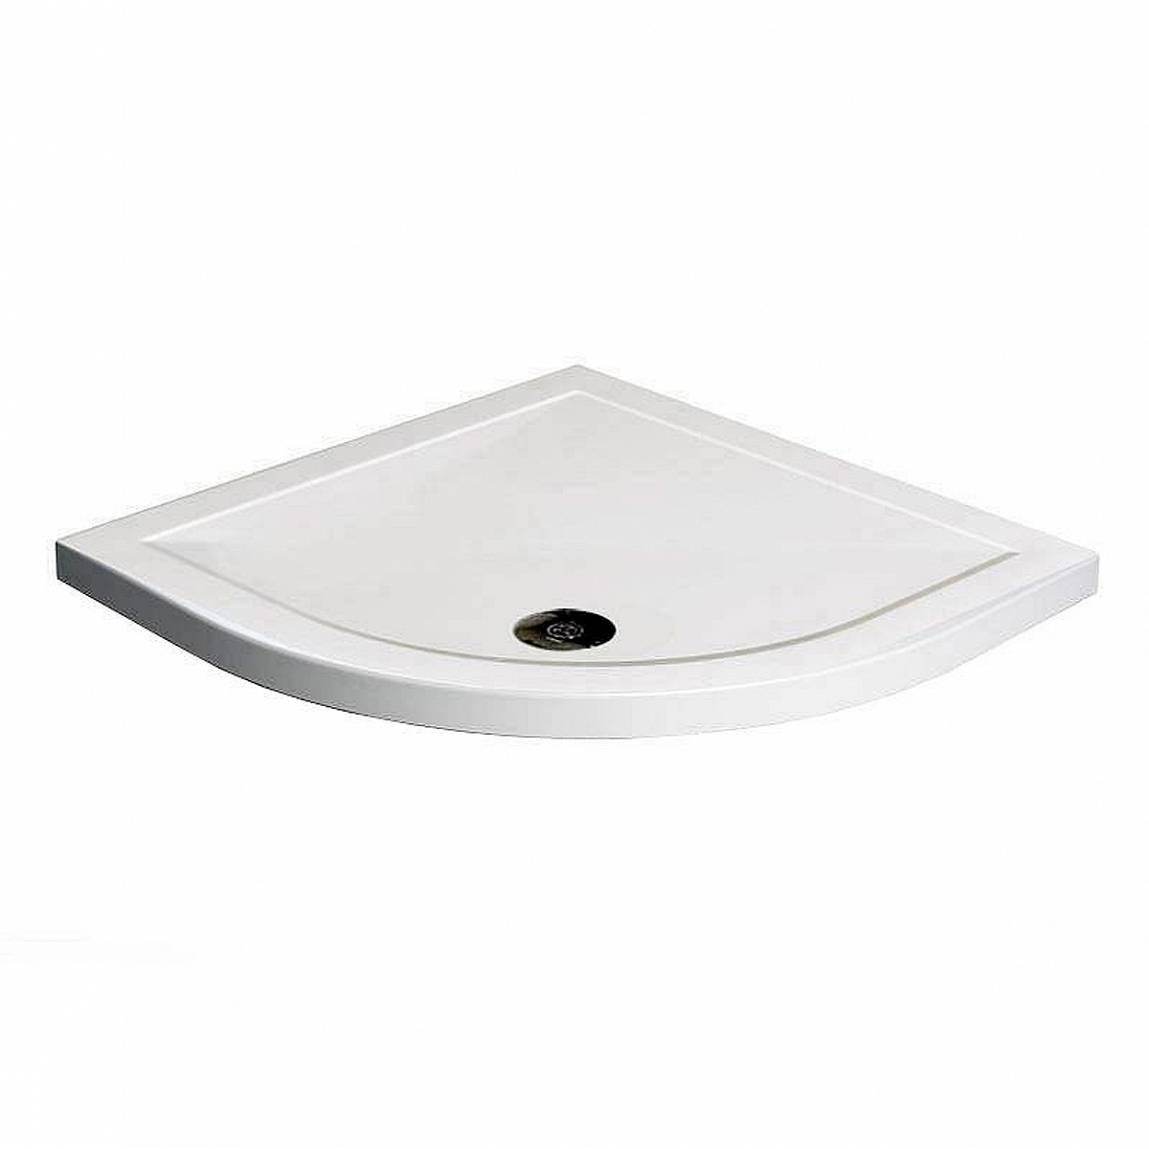 Image of Quadrant Stone Shower Tray 800 x 800